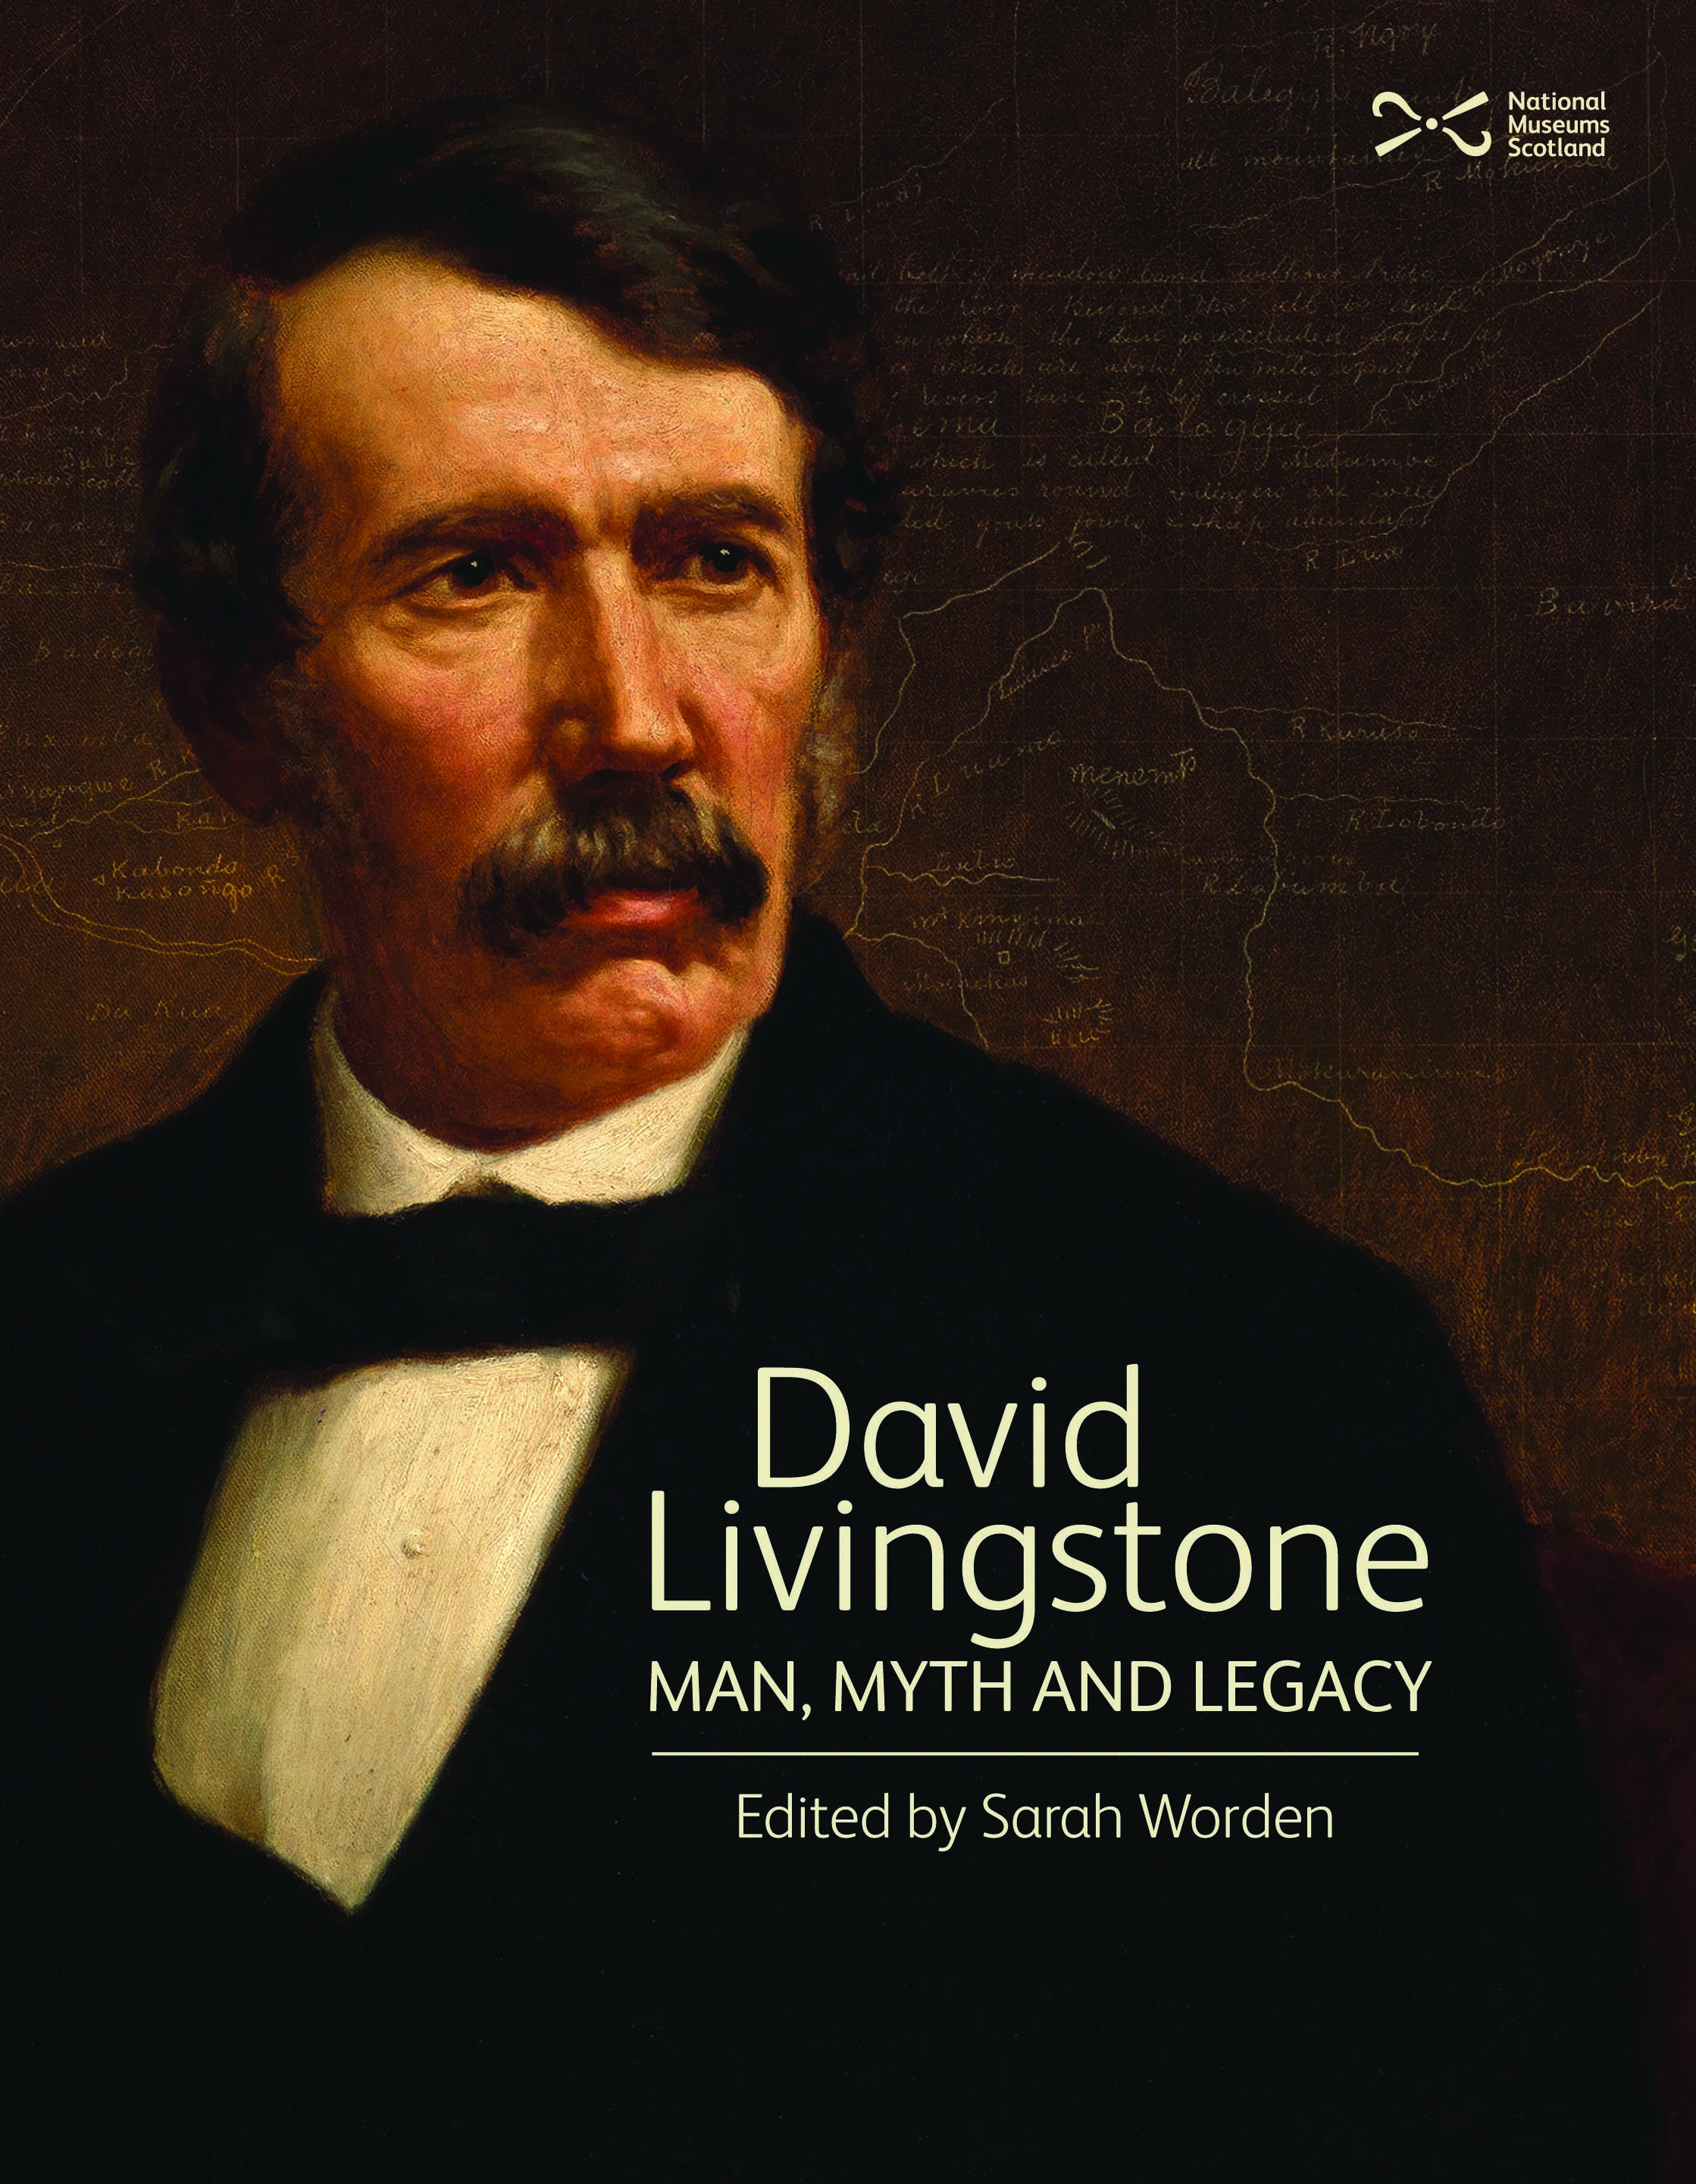 christianity biography of david livingstone essay David livingstone - an explorer and a missionary as usual, when we are free to choose a theme david livingstone africa has more than 250 million christians, making christianity the second david livingstone was the most famous african missionary  livingstone treated the africans with.